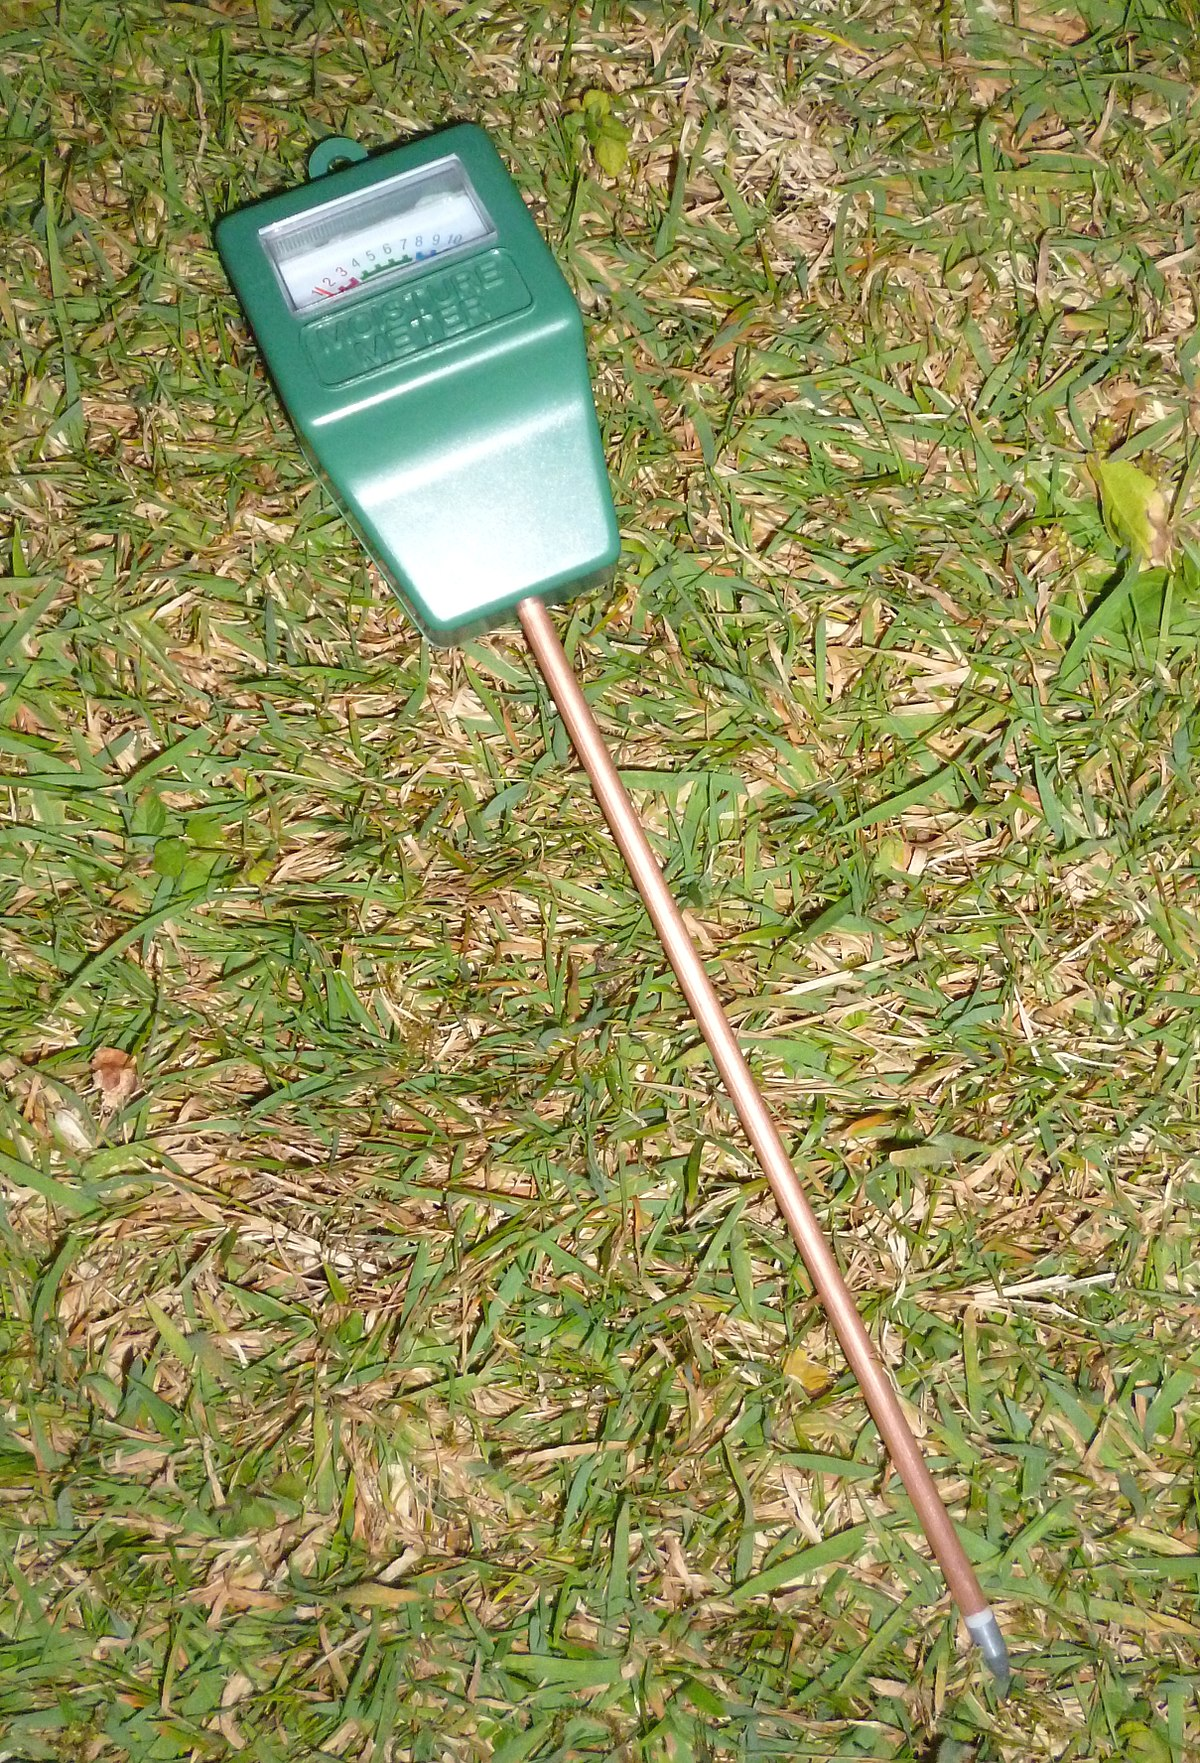 Soil moisture sensor wikipedia for Soil moisture sensor